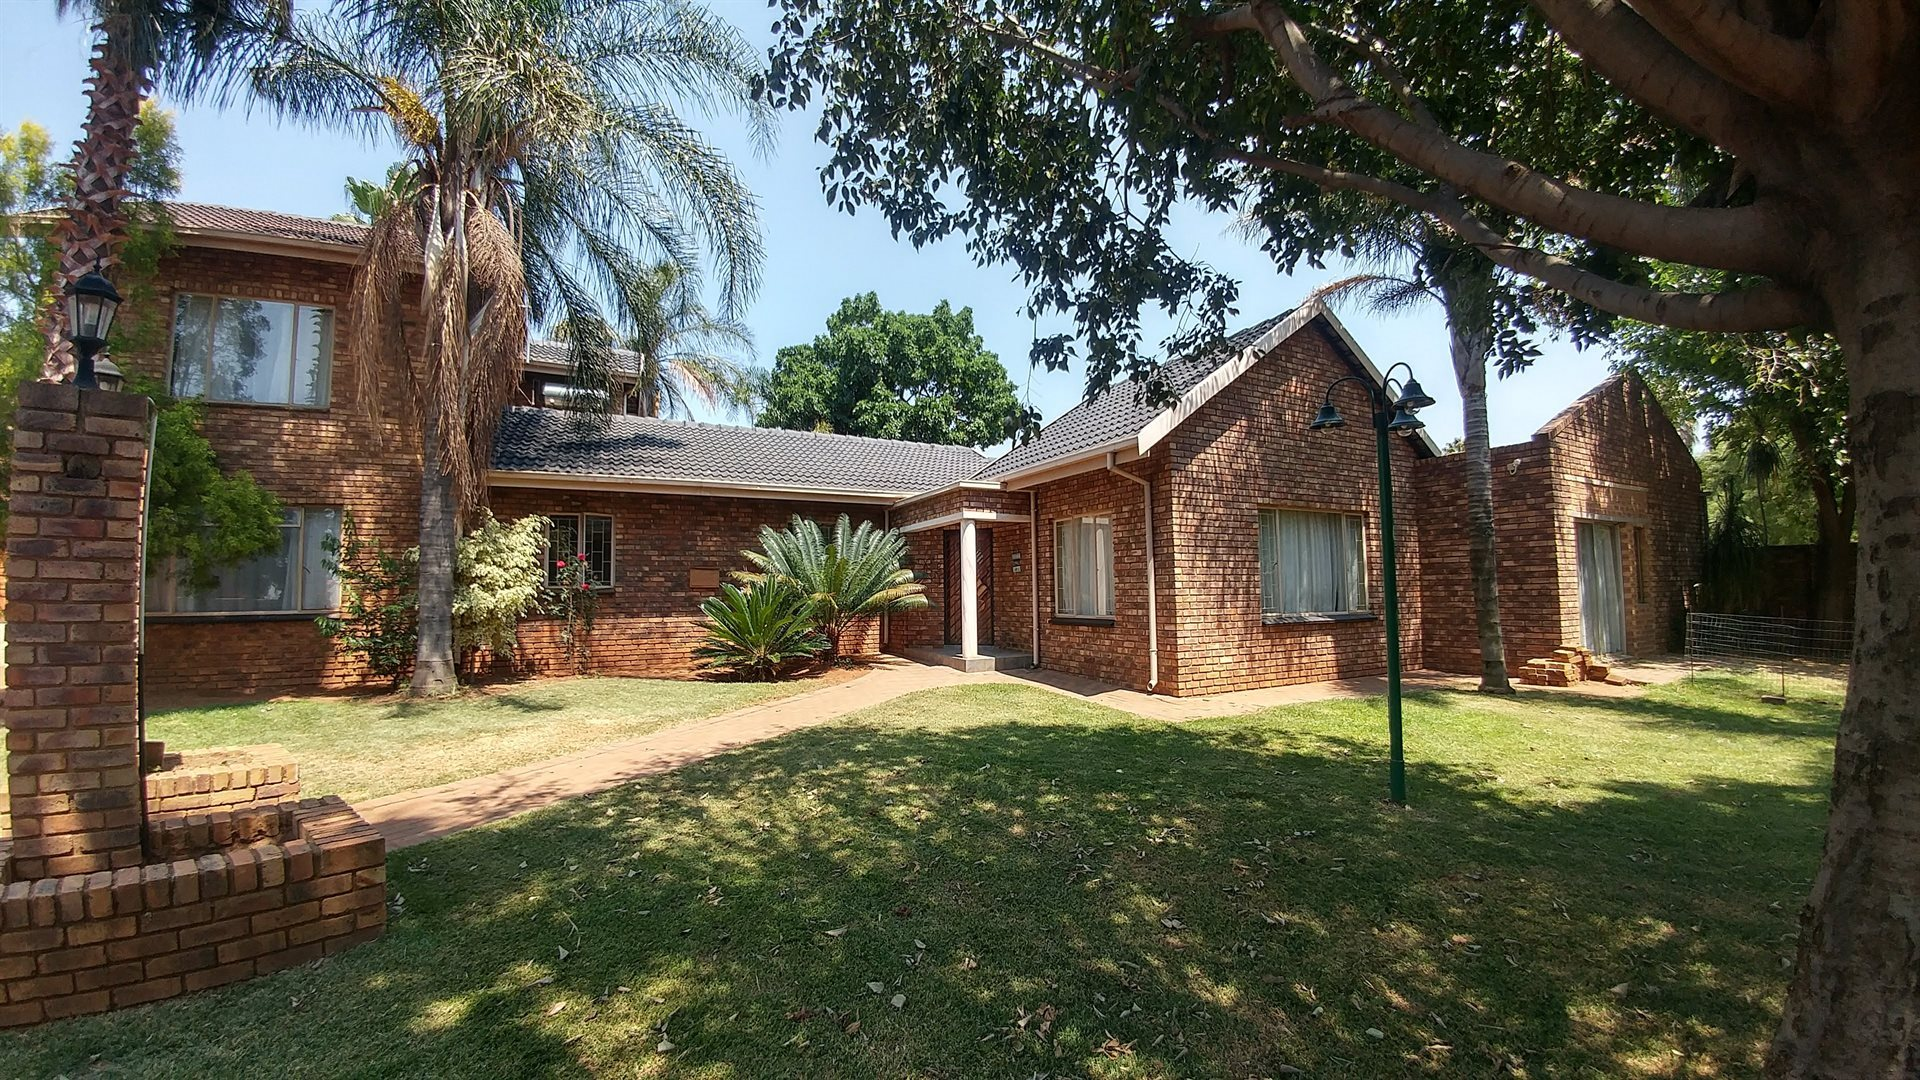 Centurion, Rooihuiskraal Property  | Houses For Sale Rooihuiskraal, Rooihuiskraal, House 5 bedrooms property for sale Price:1,885,000